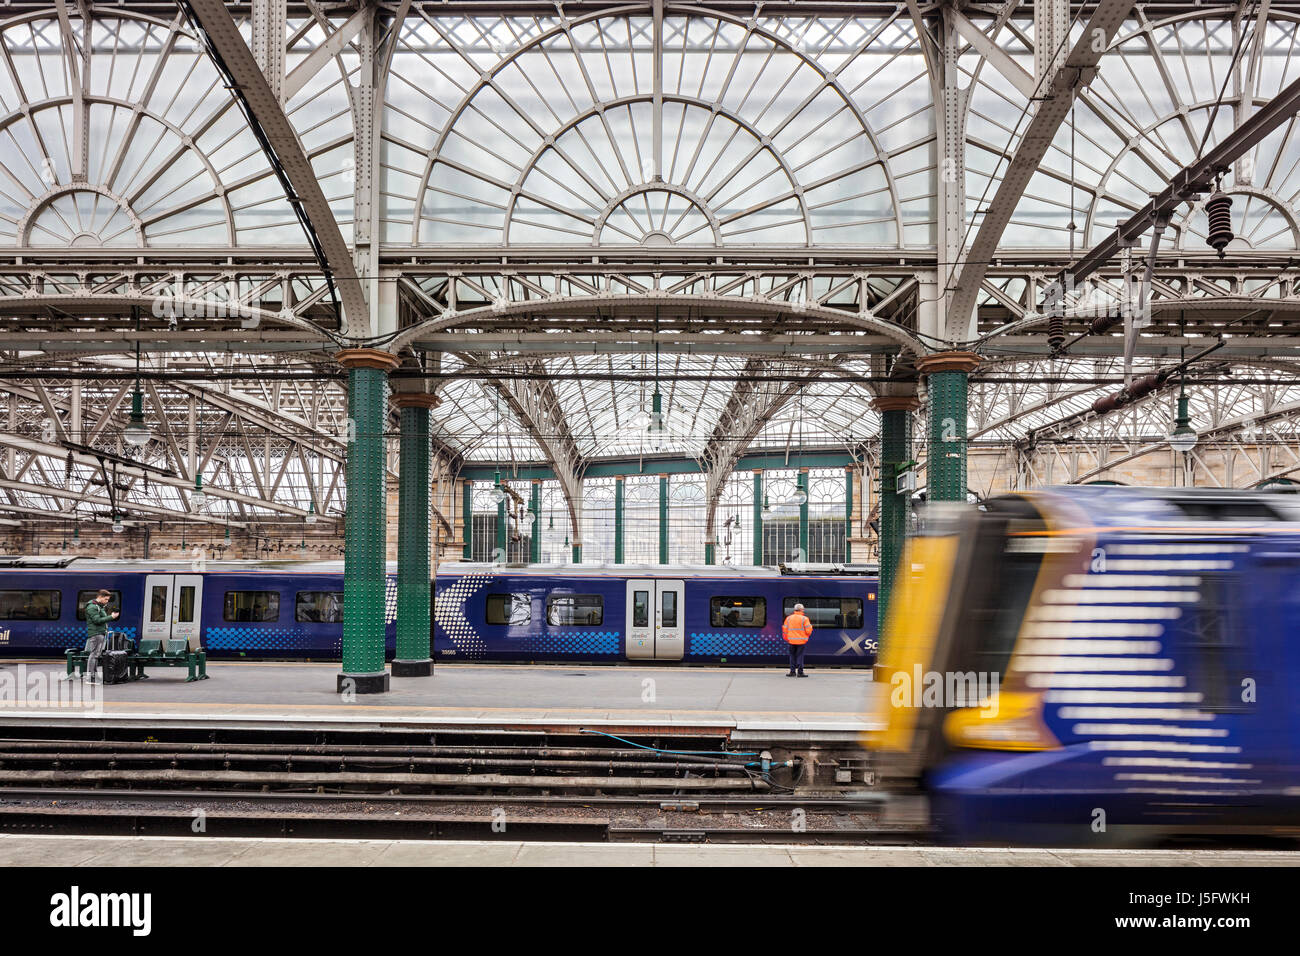 Platforms at Glasgow Central Station - Stock Image